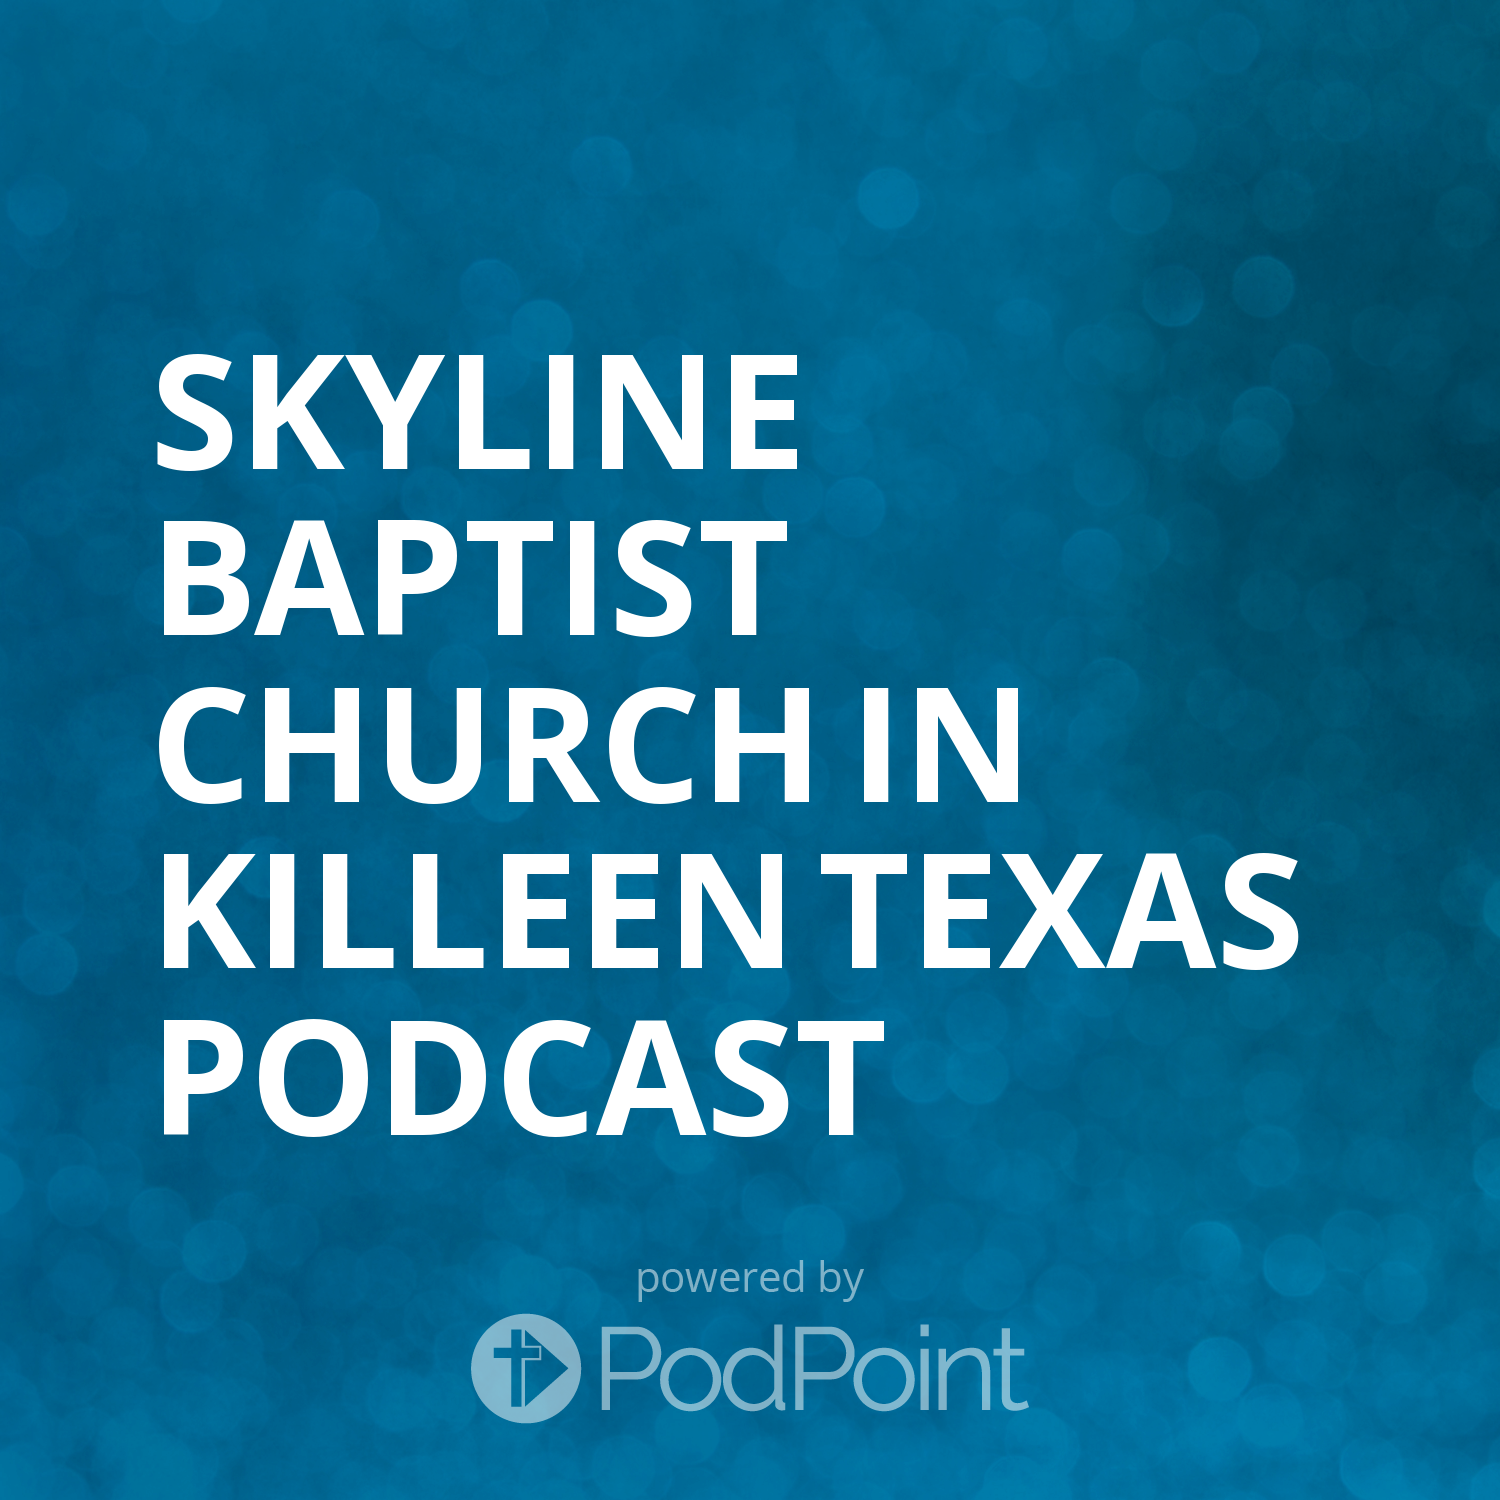 Skyline Baptist Church in Killeen Texas Podcast